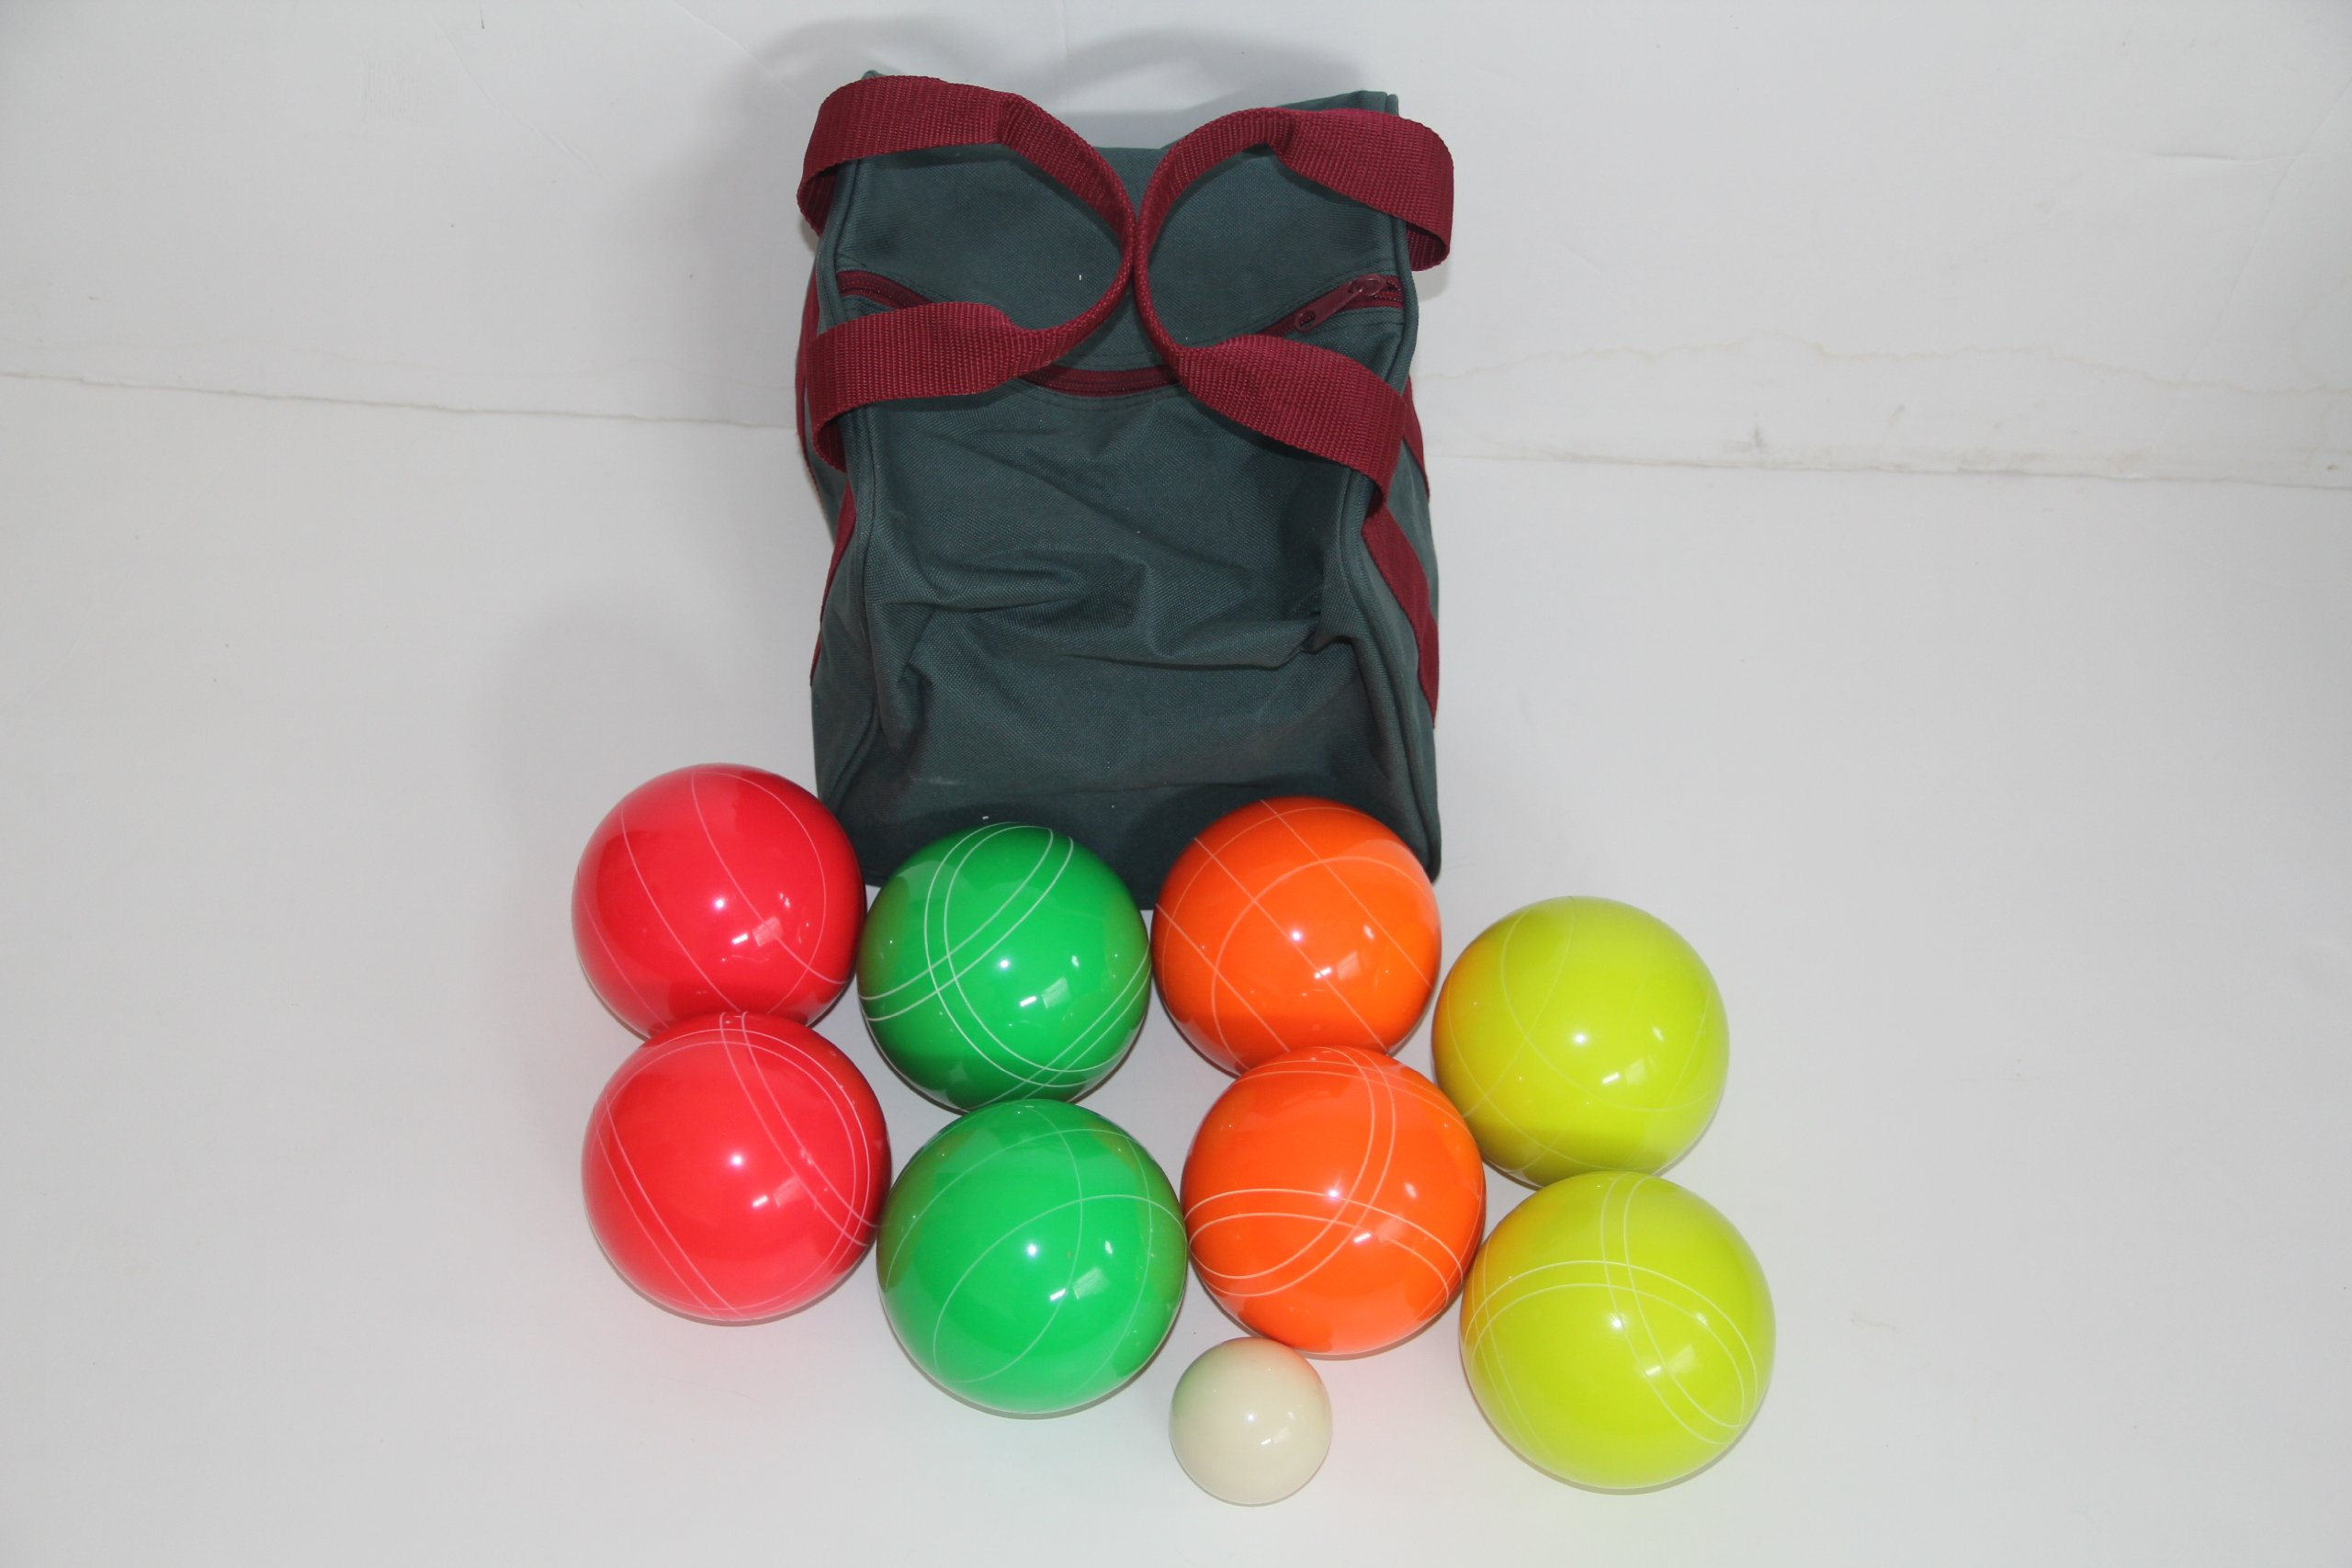 Premium Quality EPCO GLO Tournament Set with Stripes - 110mm Green, Red, Yellow, Orange Bocce Balls [Toy] by Epco